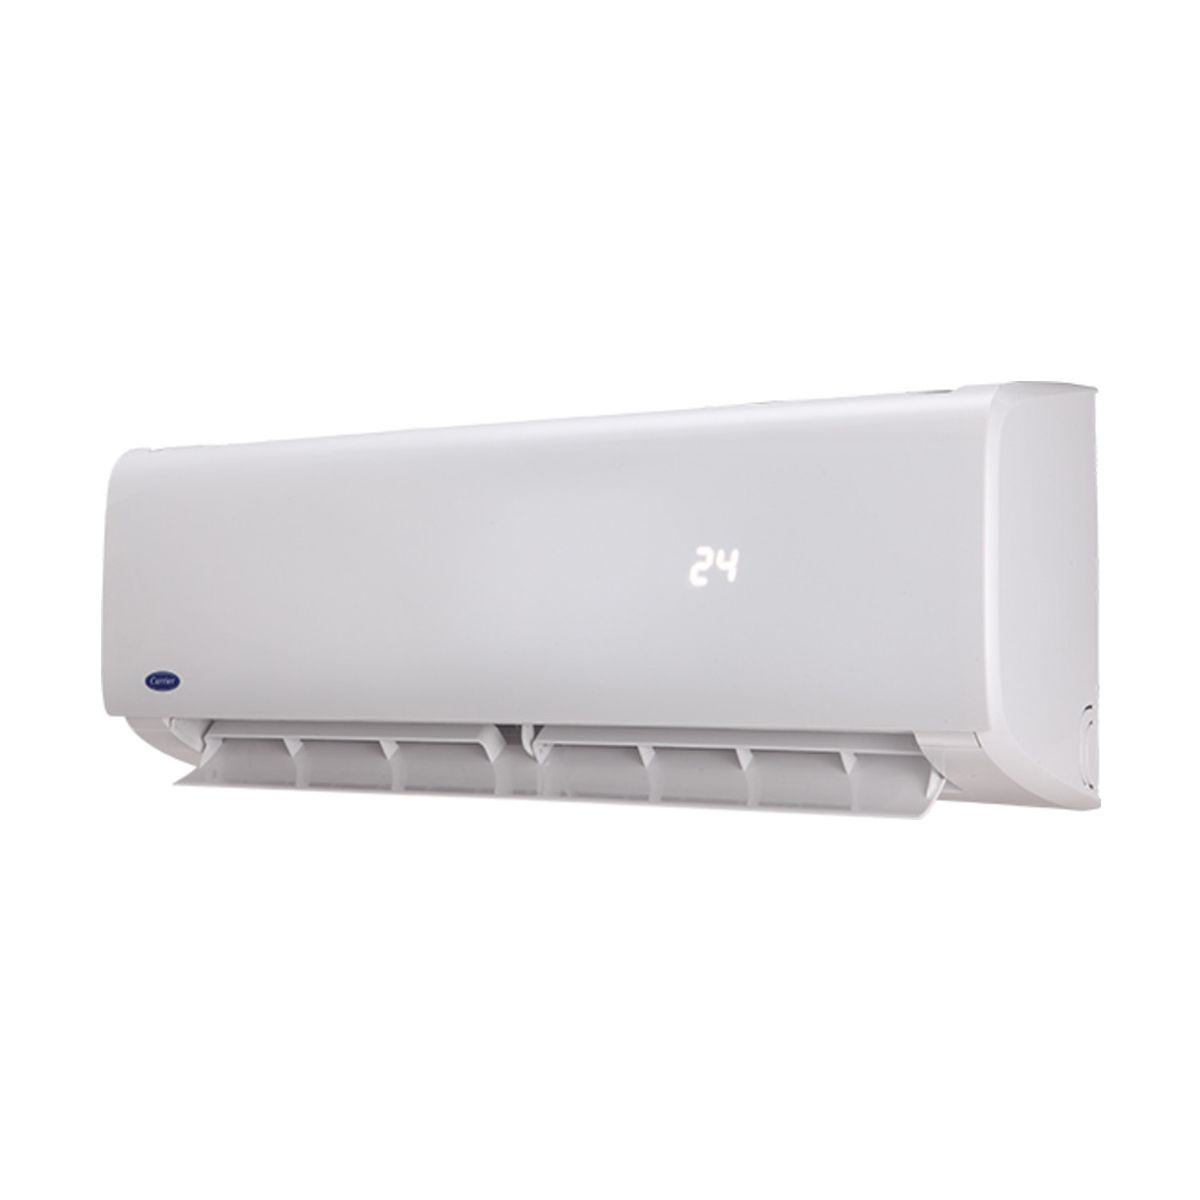 Carrier Easyfit Wall Mounted Air Conditioning Inverter